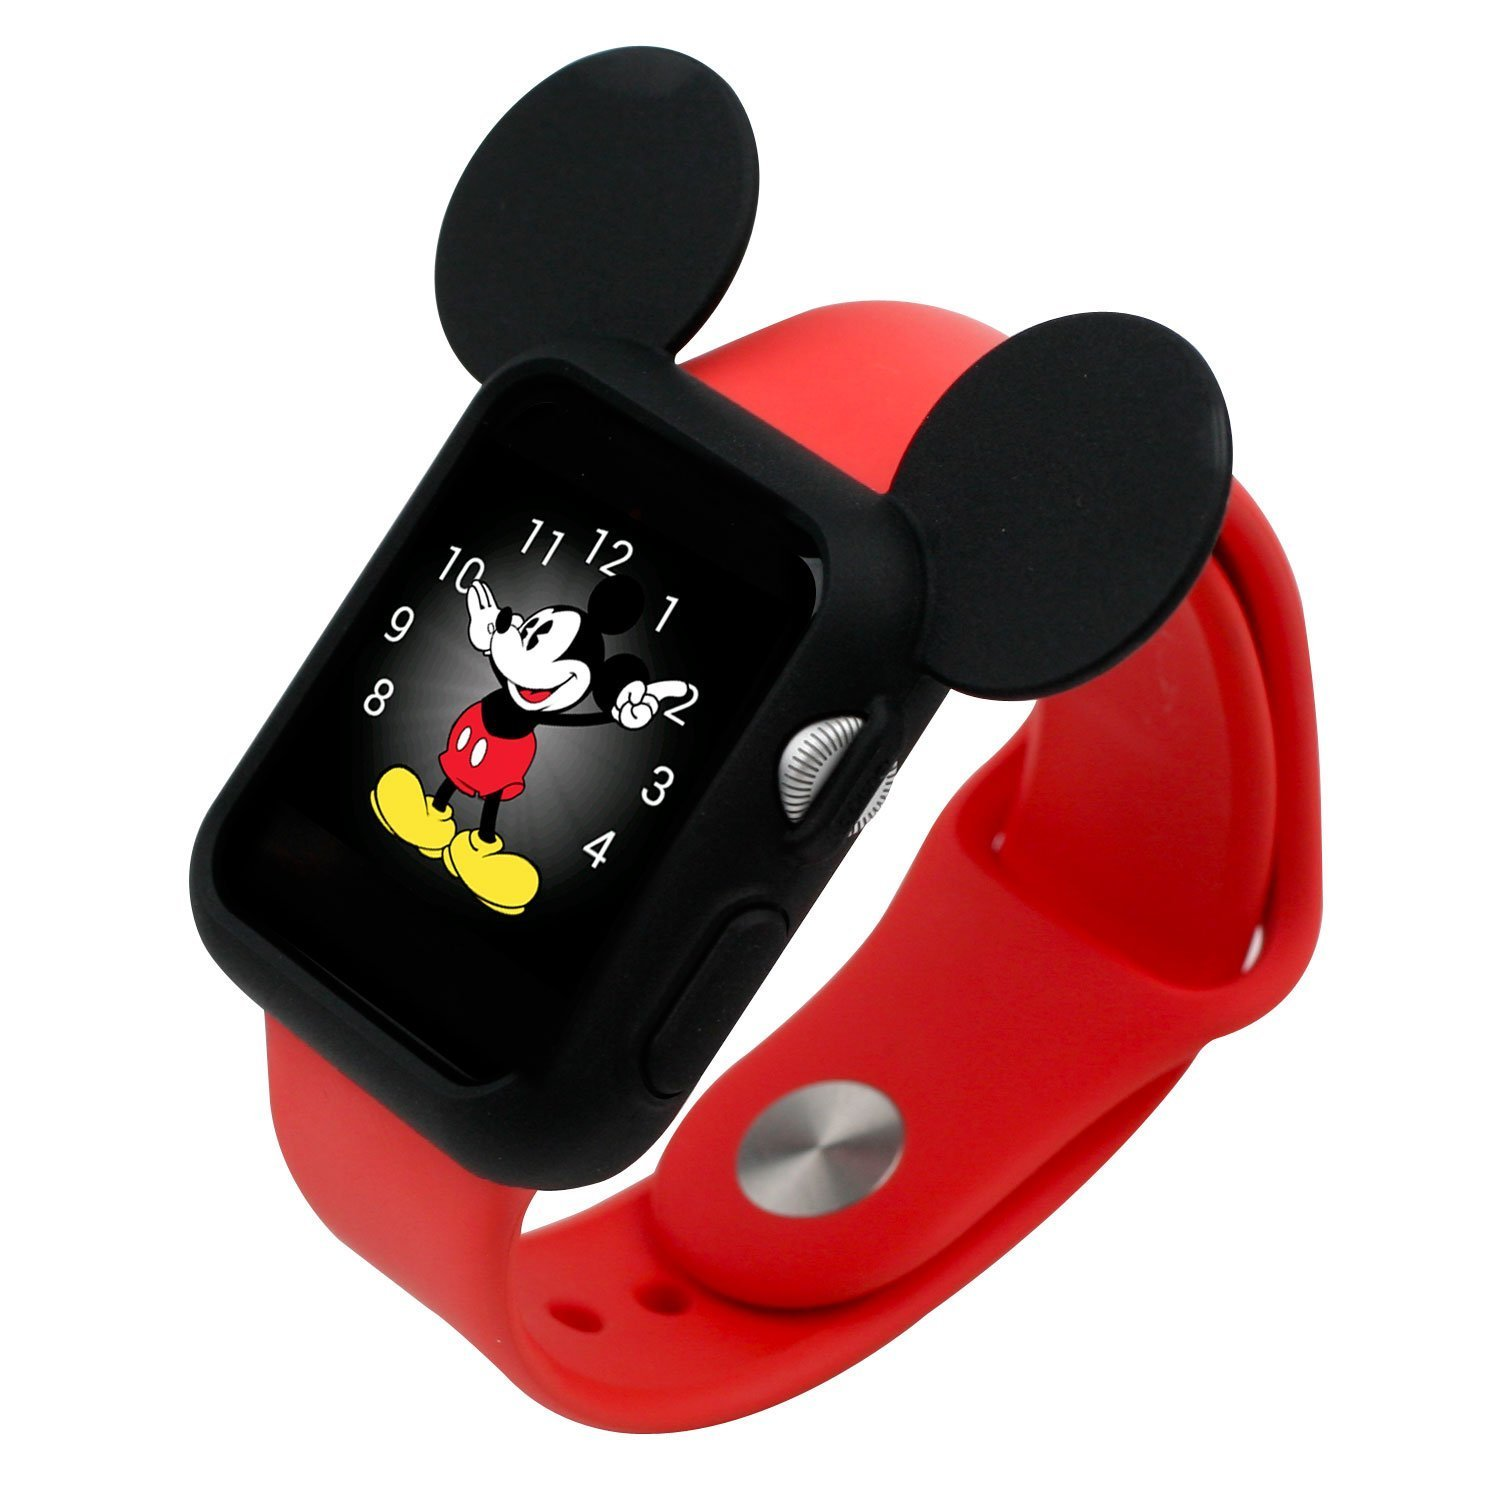 Navor Soft Silicone Protective Case Disney Character Mickey Mouse Ears Compatible with Apple Watch 42mm Series 1/2/ 3 - Black